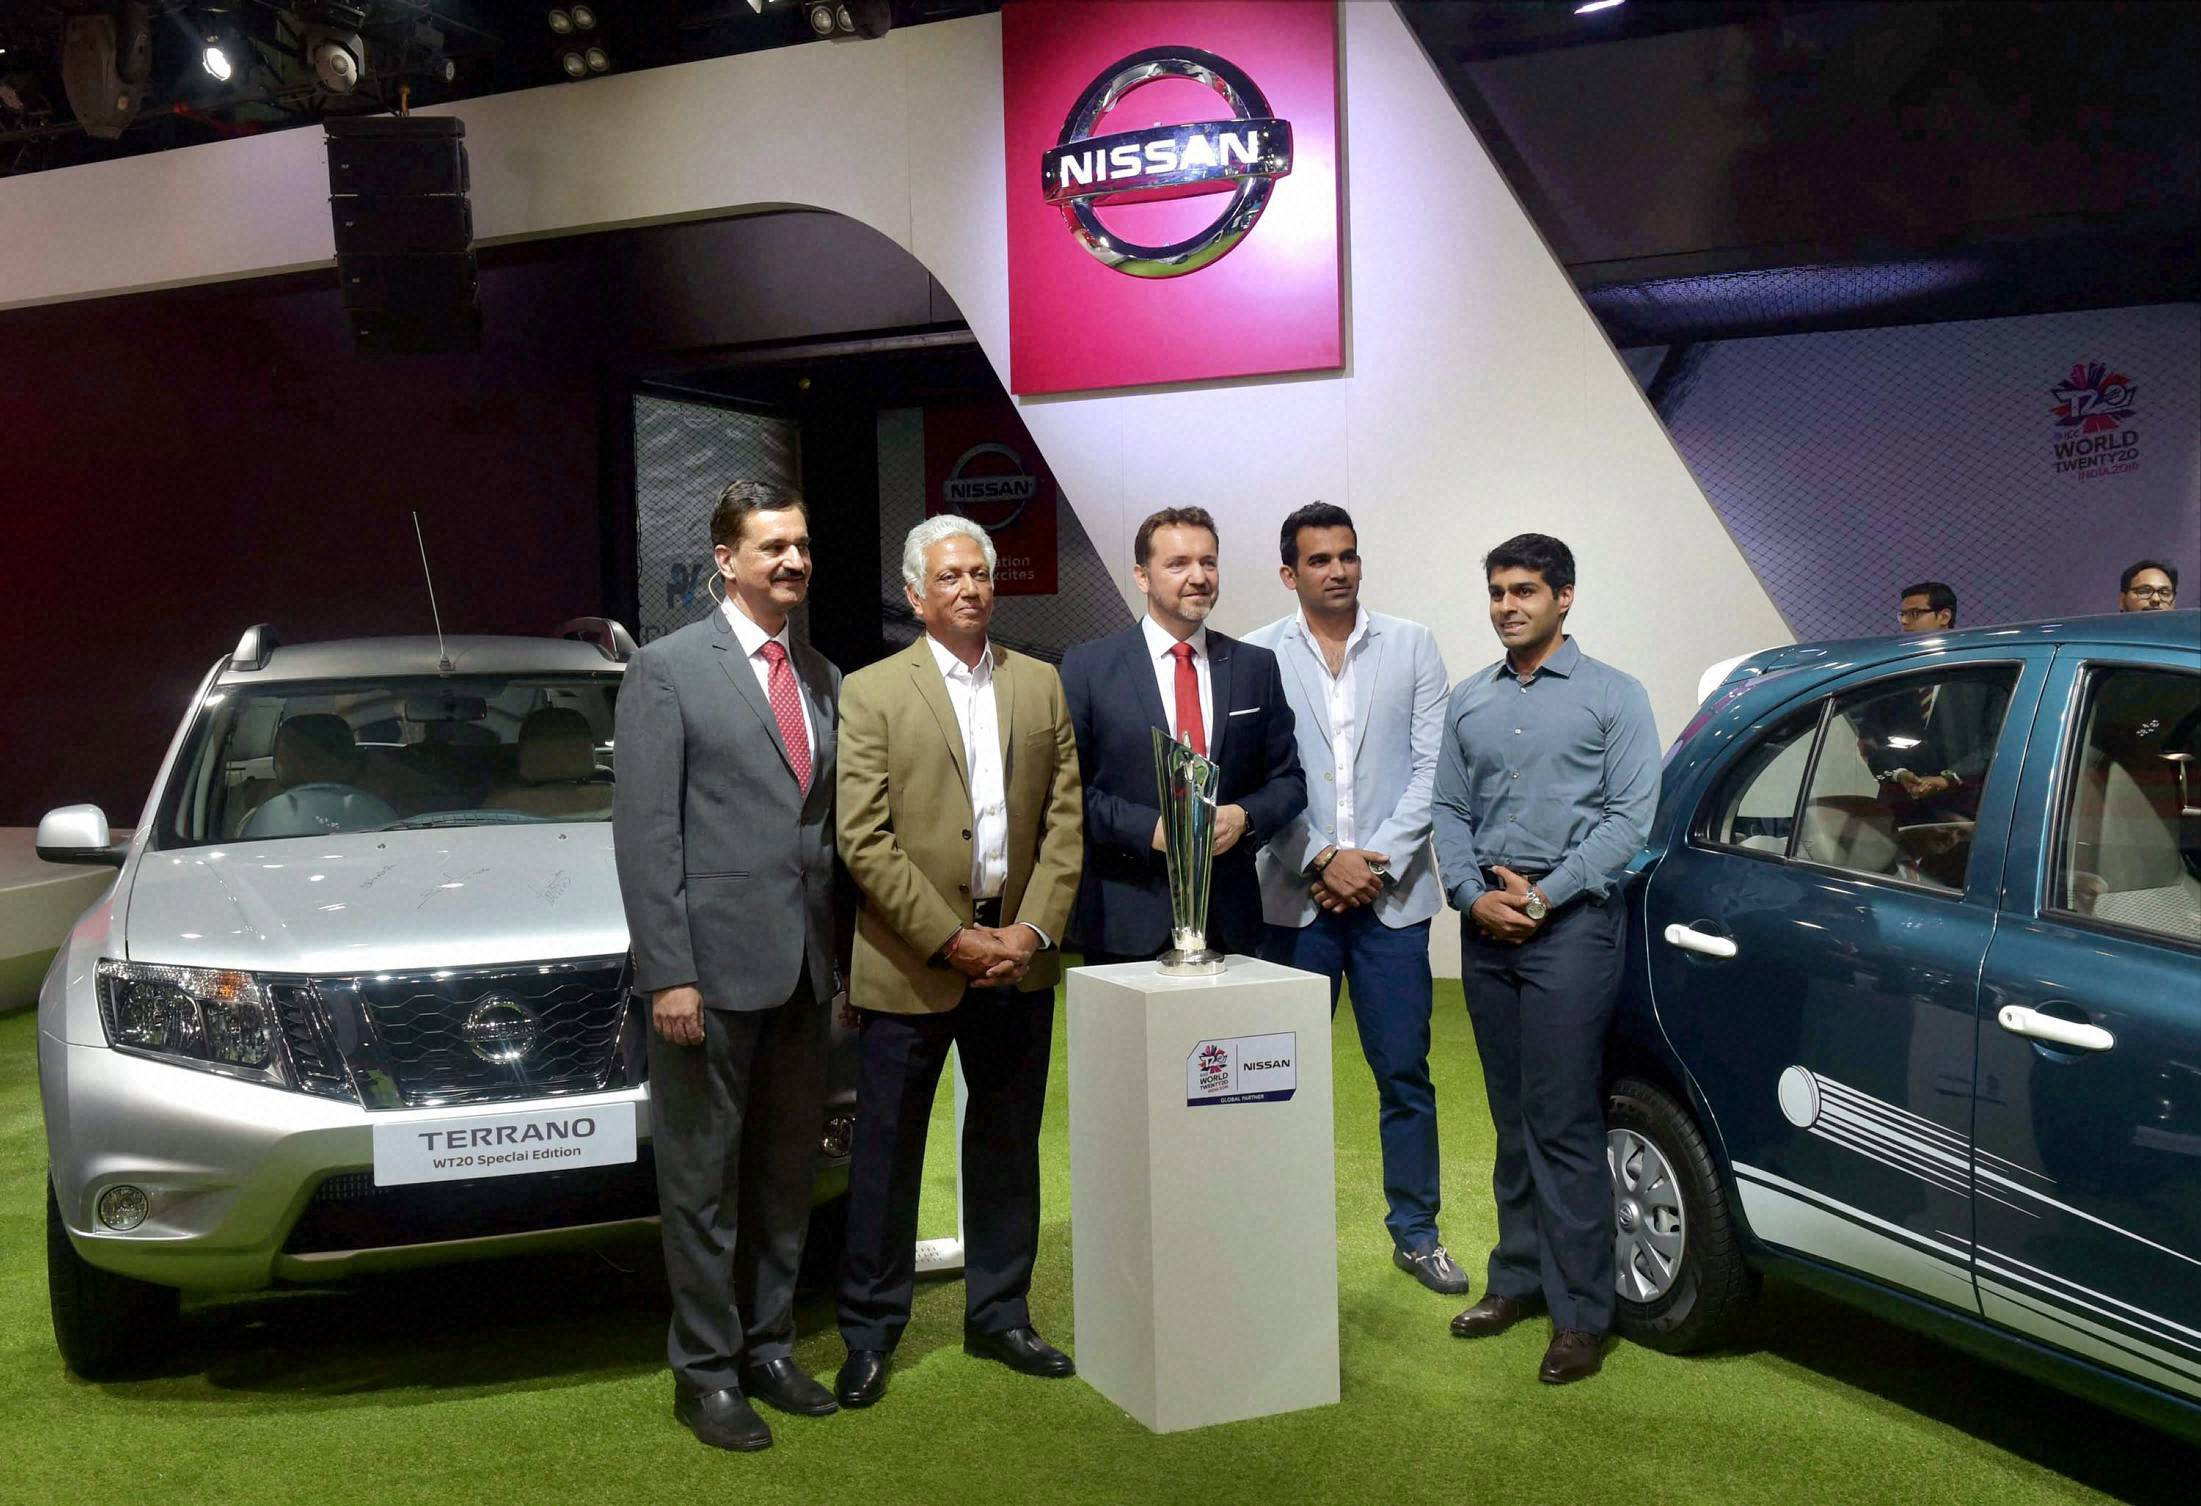 Auto Expo 2016 : World T20 Trophy at Nissan stall